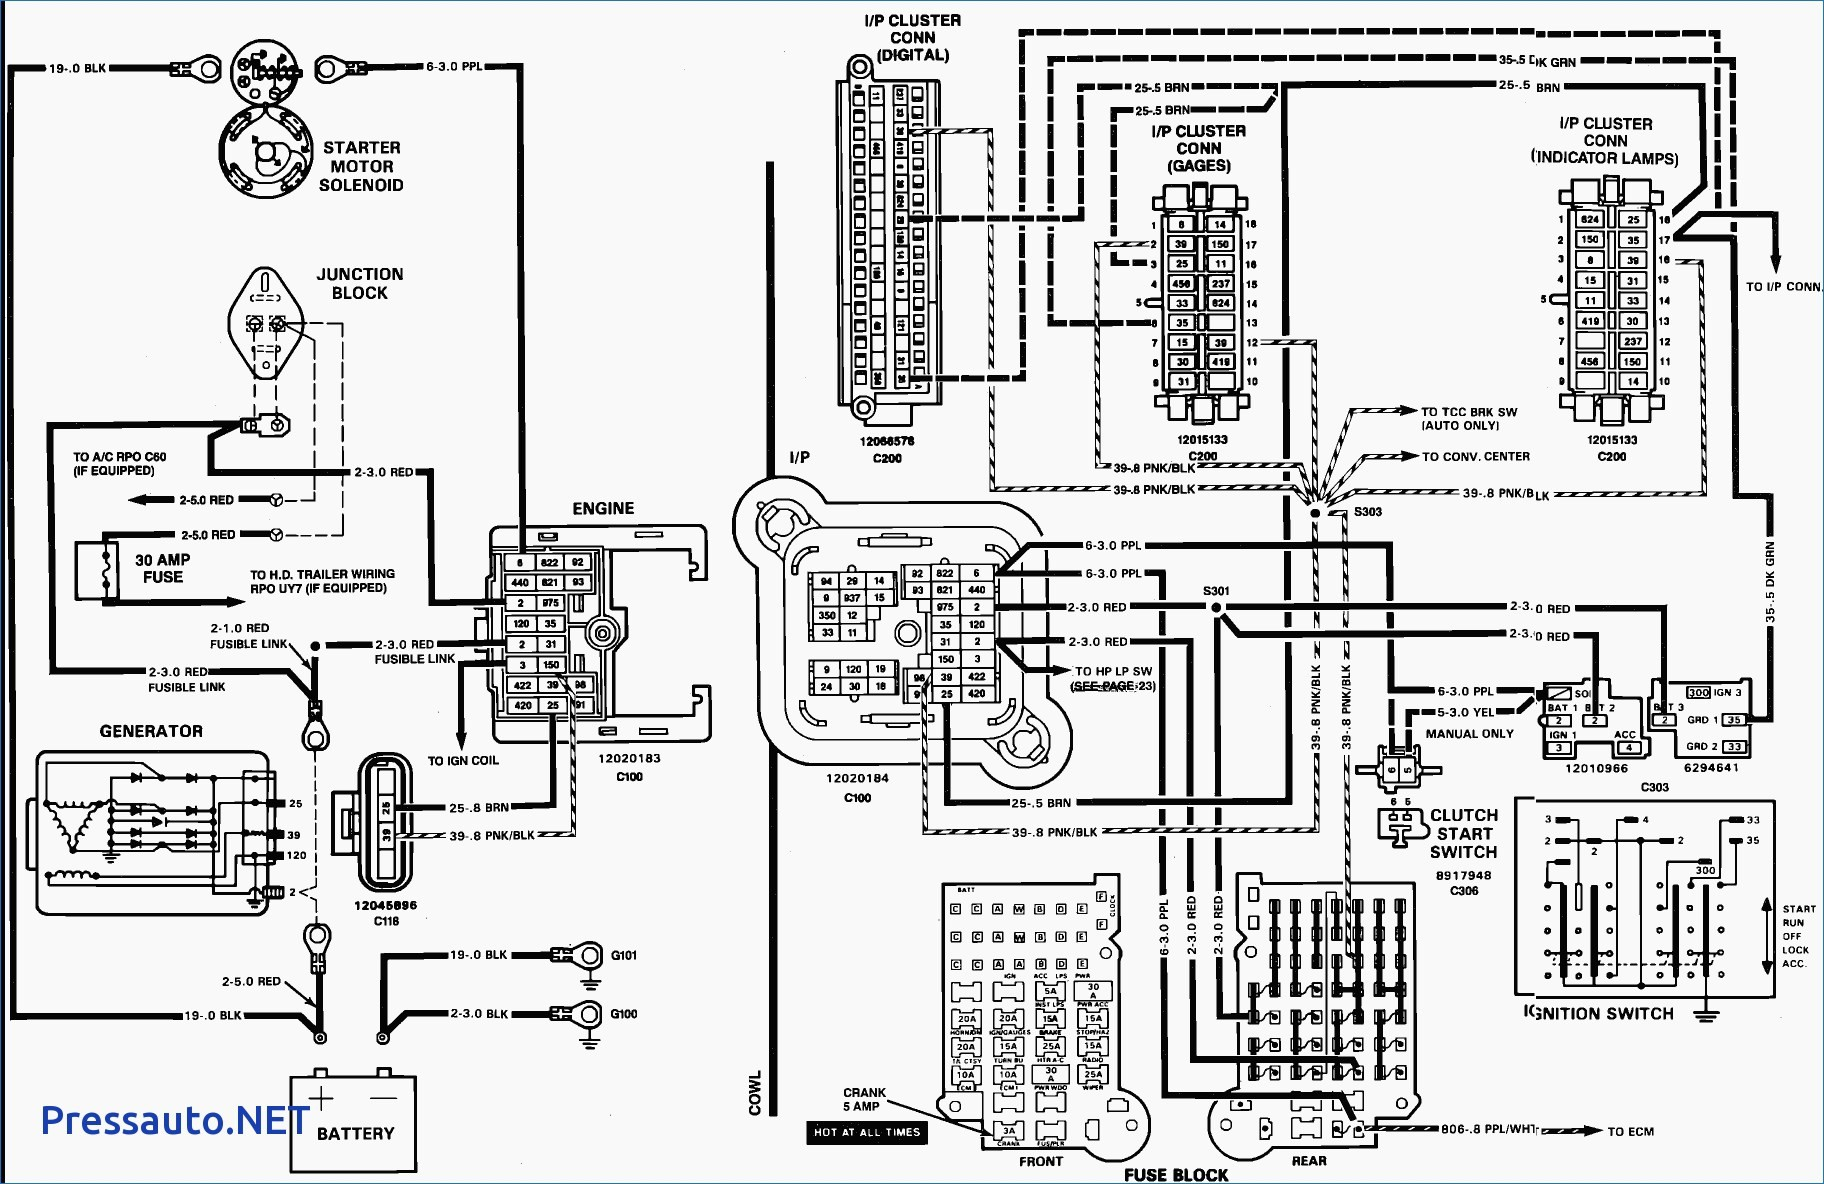 2001 Chevy S10 Wiring Diagram Schematics Diagrams 99 2 Engine Diy Enthusiasts U2022 Lumina